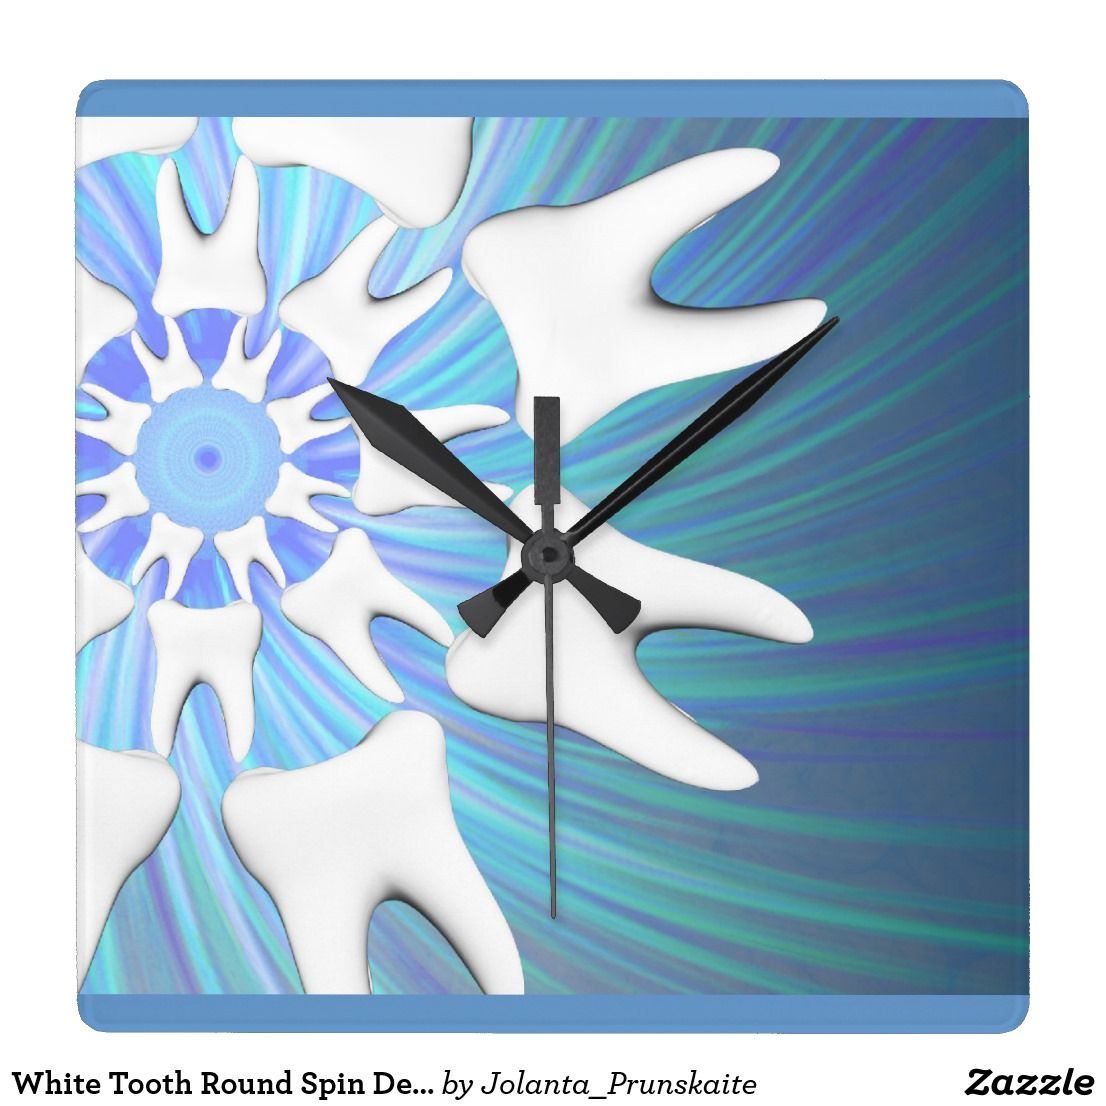 White tooth round spin dentist wall clock clocks pinterest